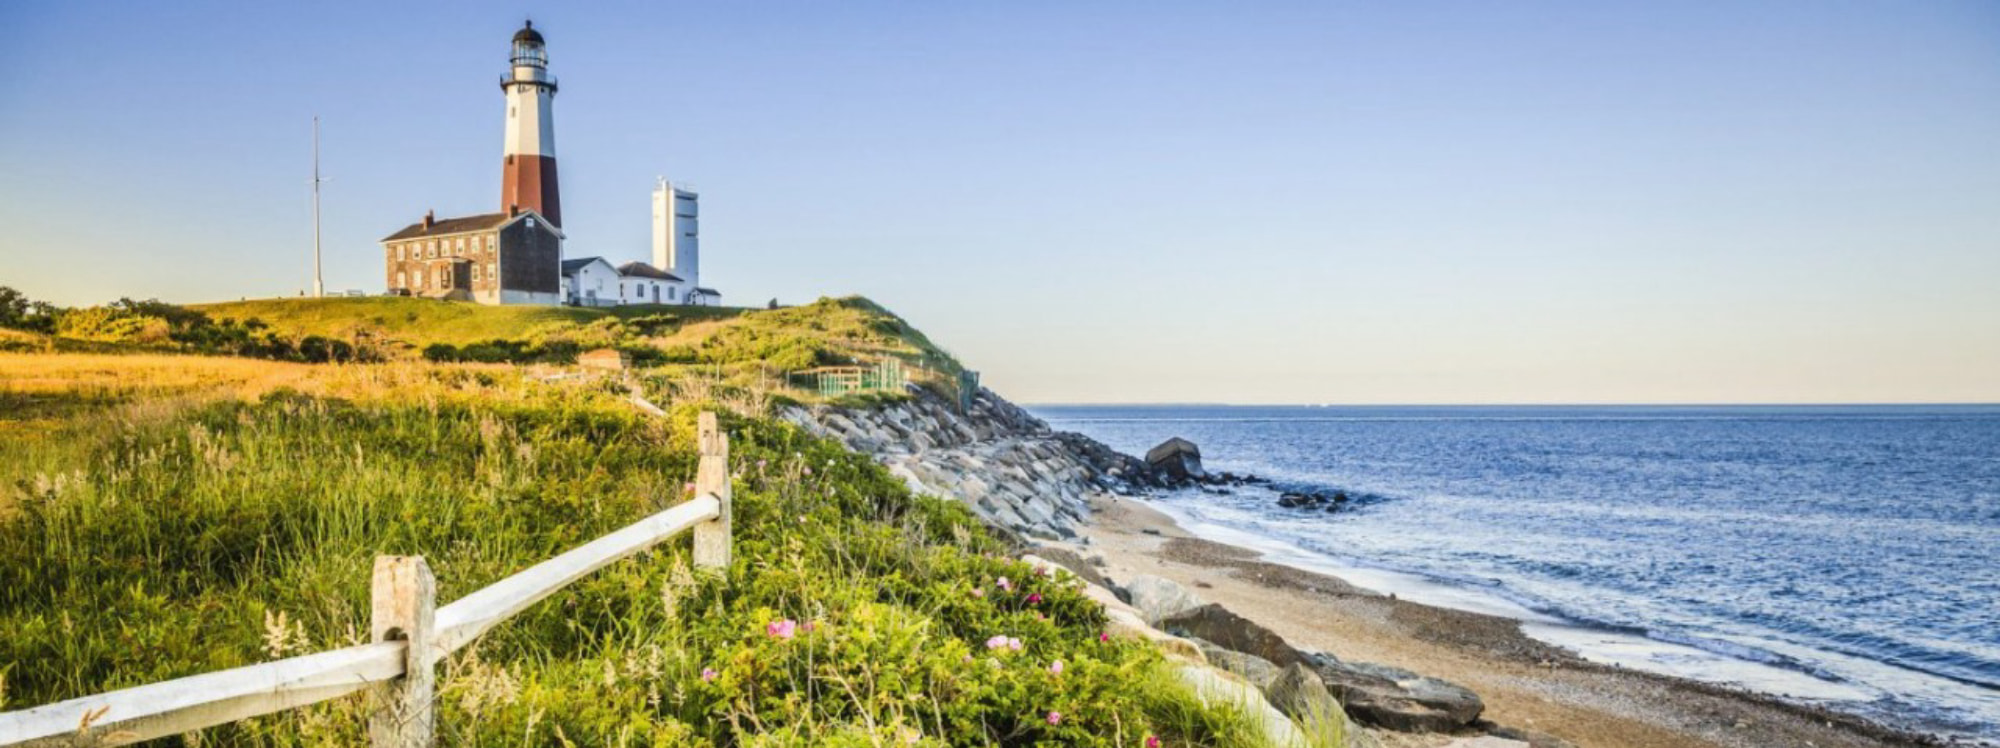 Getting to The Hamptons, United States